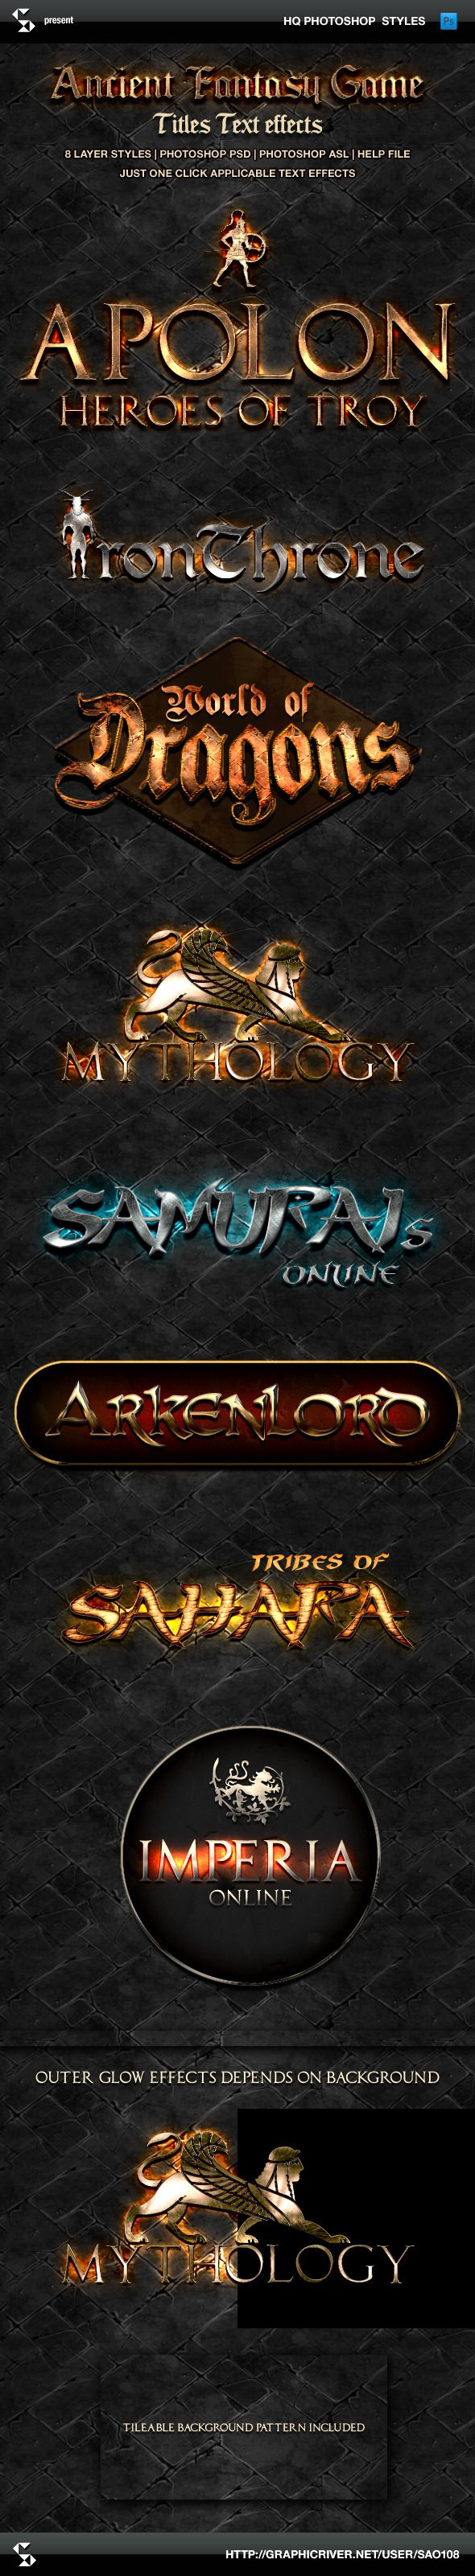 Ancient Fantasy Game Style Titles - (photoshop layer styles, text effects) Just one click applicable text effects for photoshop.